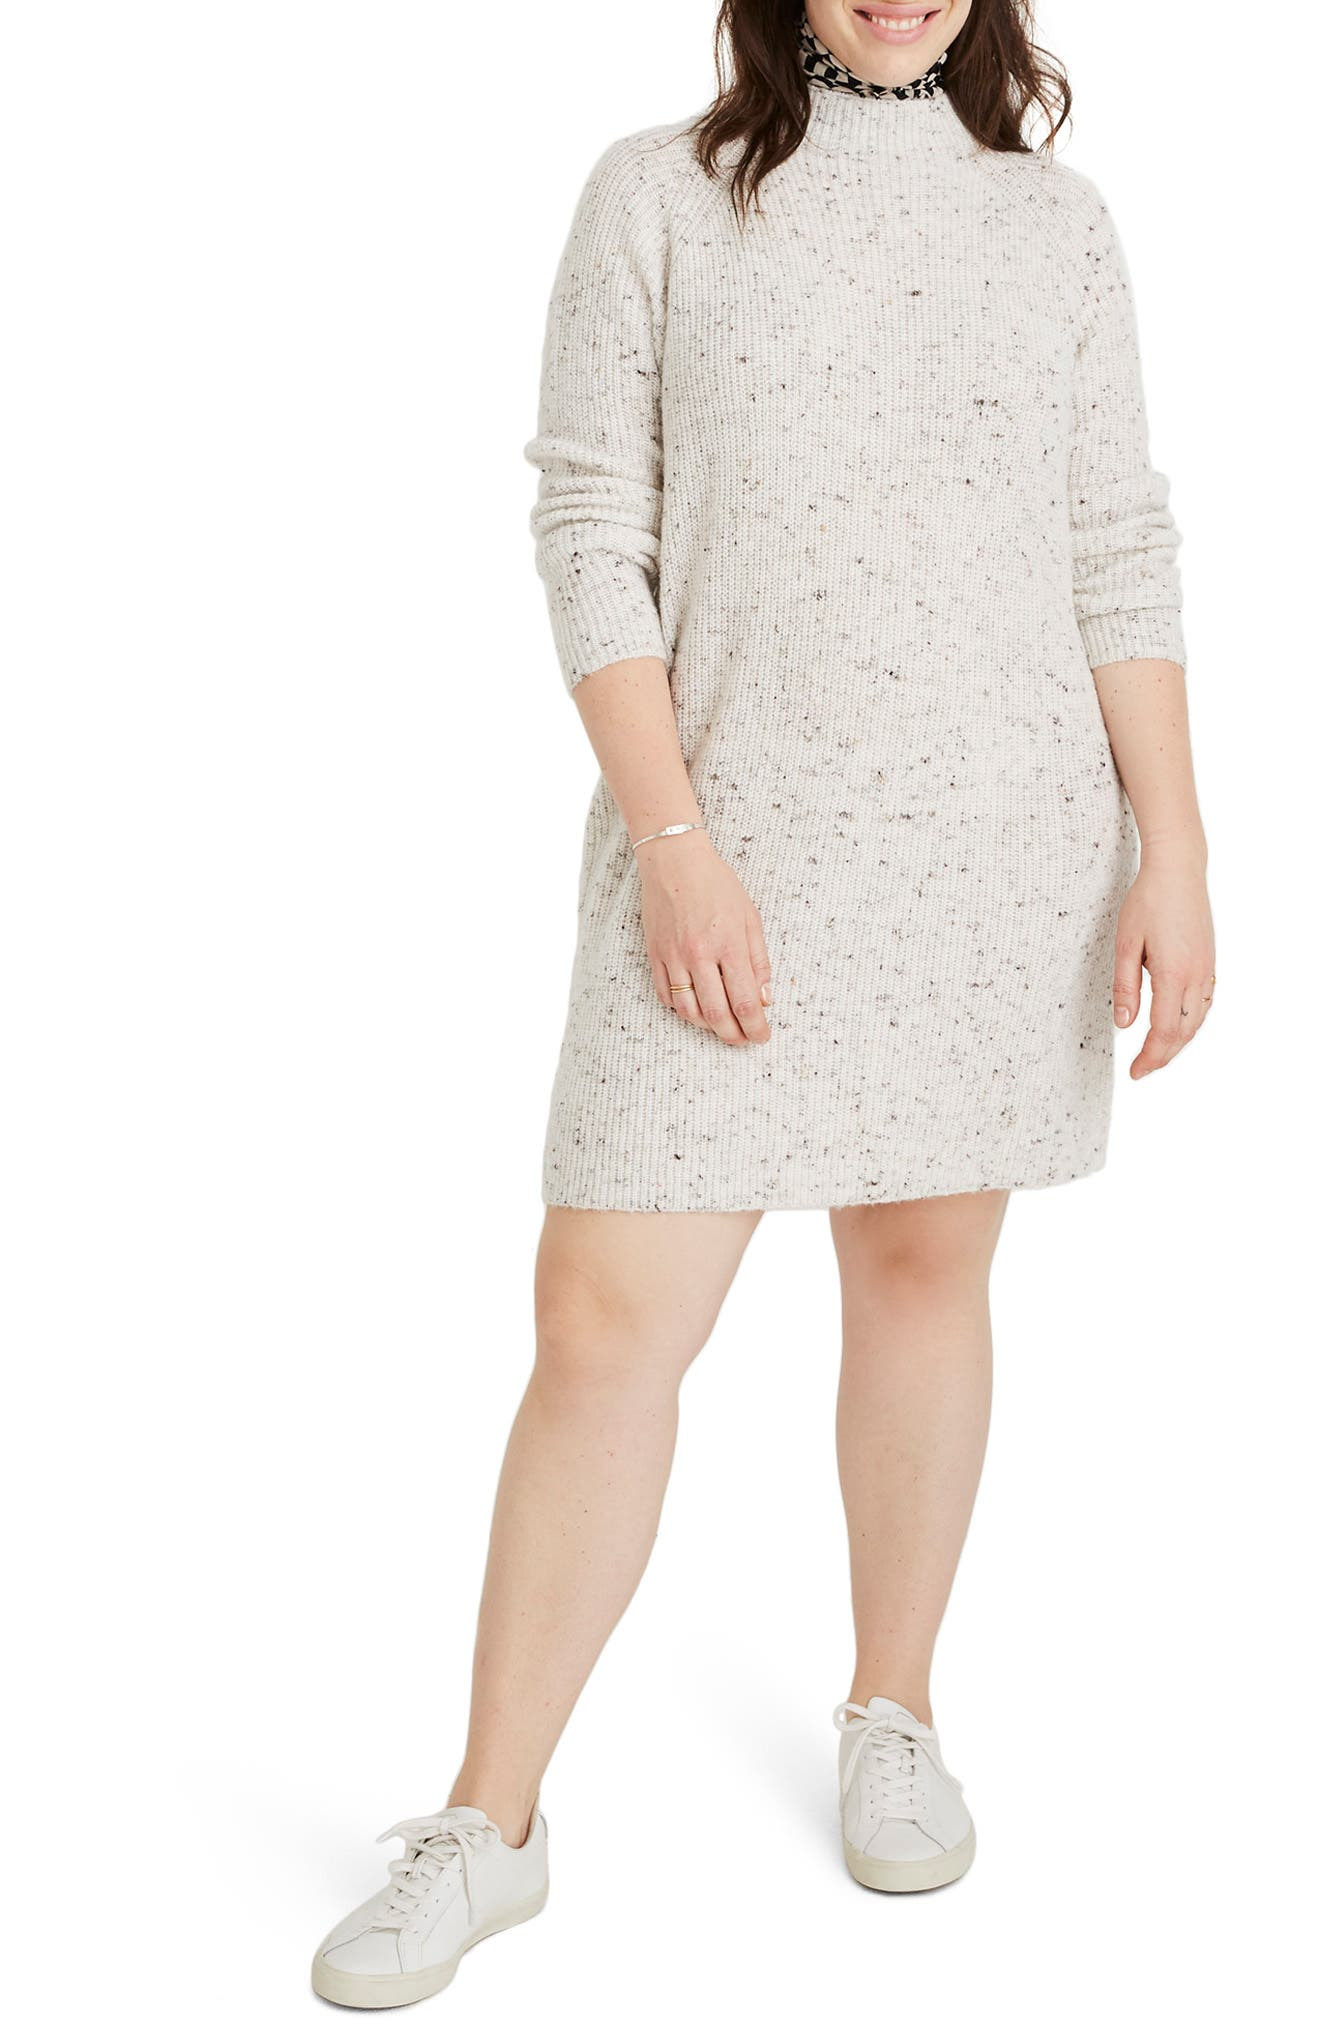 Northfield Donegal Mock Neck Sweater Dress,                             Alternate thumbnail 2, color,                             DONEGAL STORM